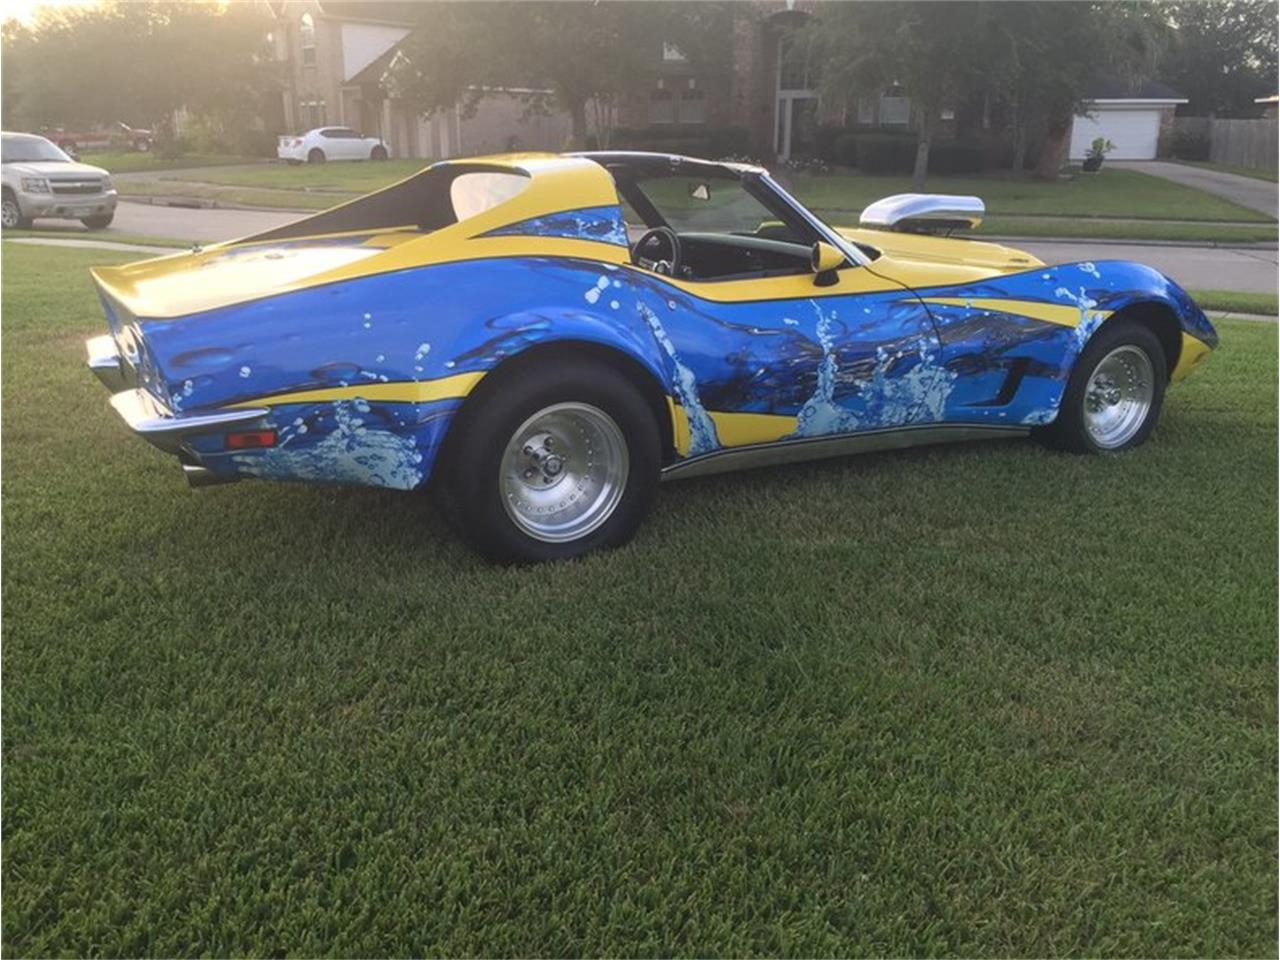 Large Picture of Classic 1973 Chevrolet Corvette located in Houston Texas Auction Vehicle Offered by Dan Kruse Classics - MB01